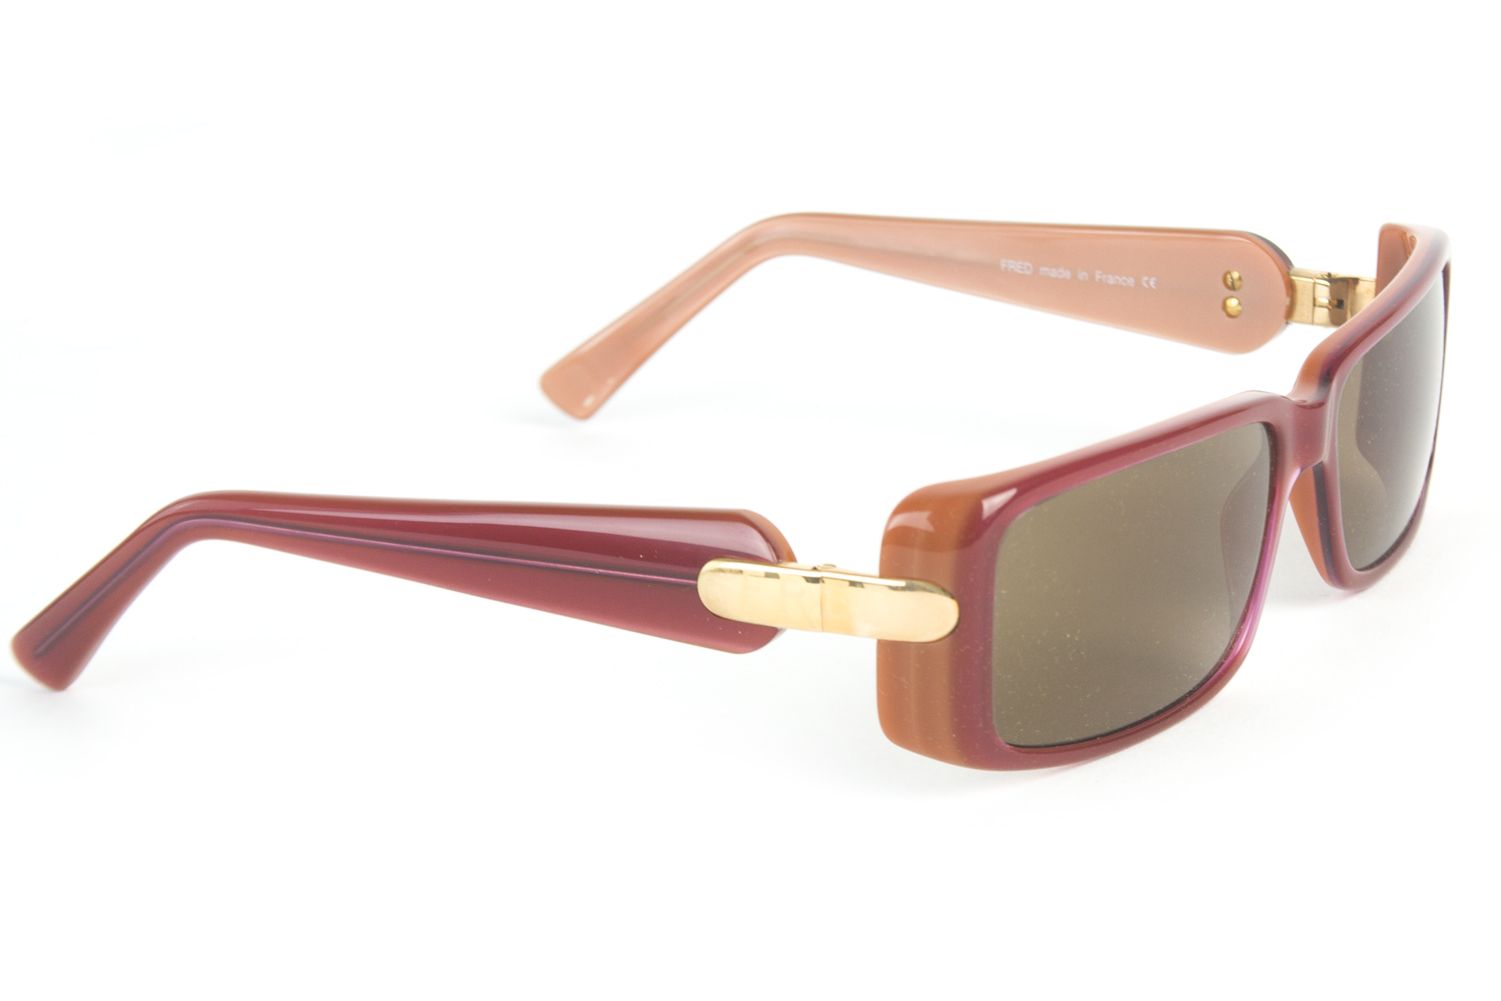 Fred-Lunettes-Marie-Galante-C2-Sunglasses-55mm-NEW thumbnail 7